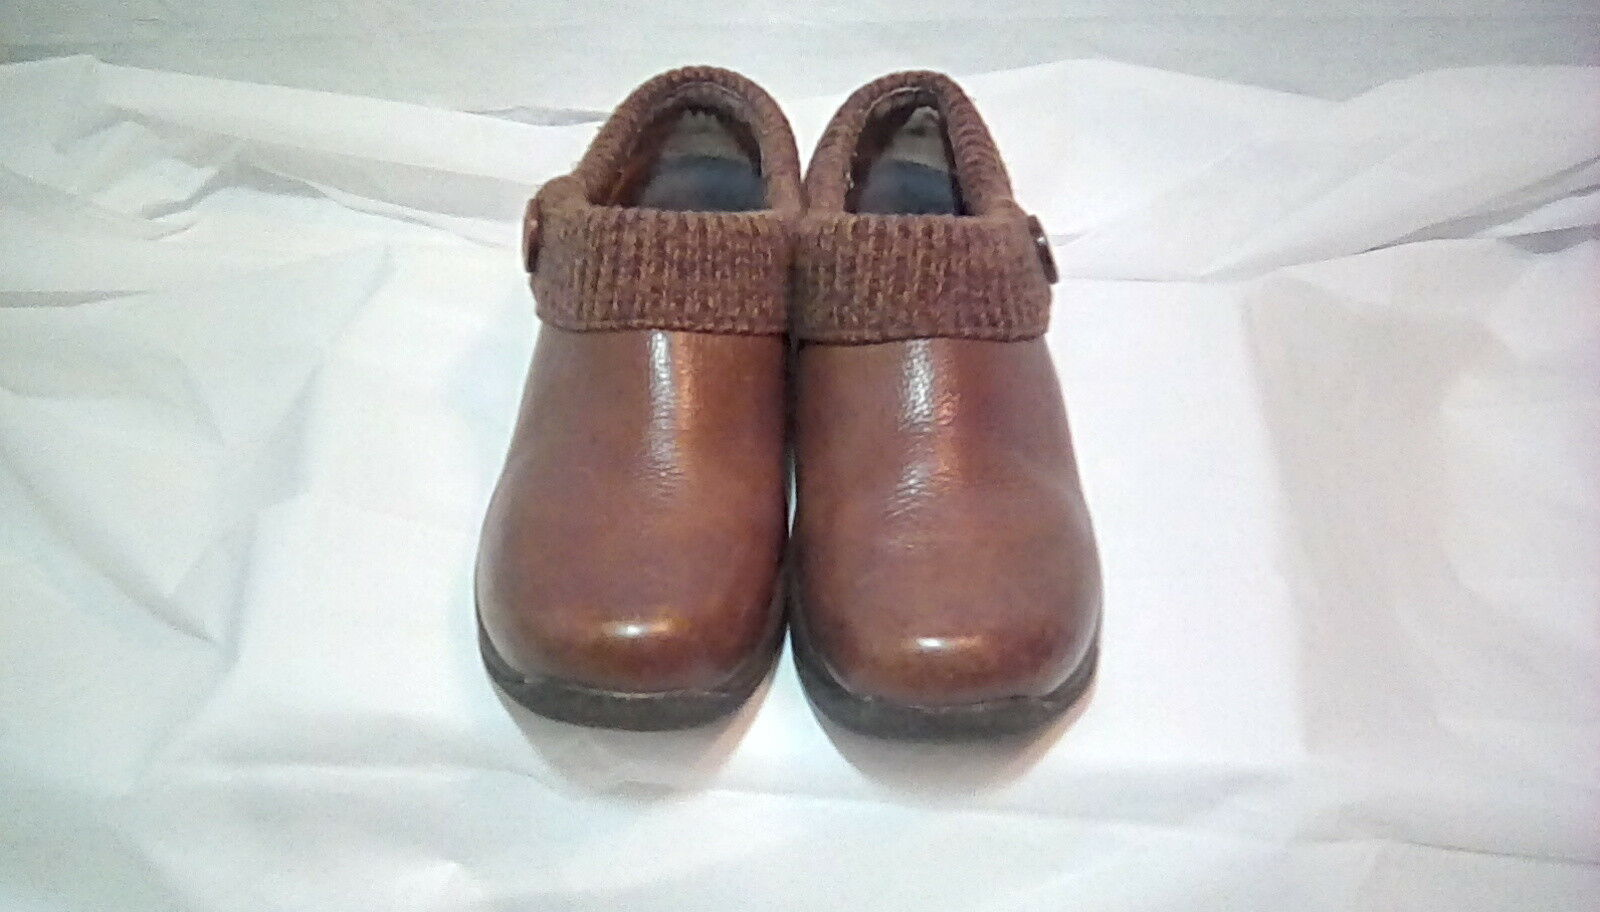 Dansko- Womens Brown Leather- Brown Sweater Trim Clog shoes- Size US 9.5-10 40